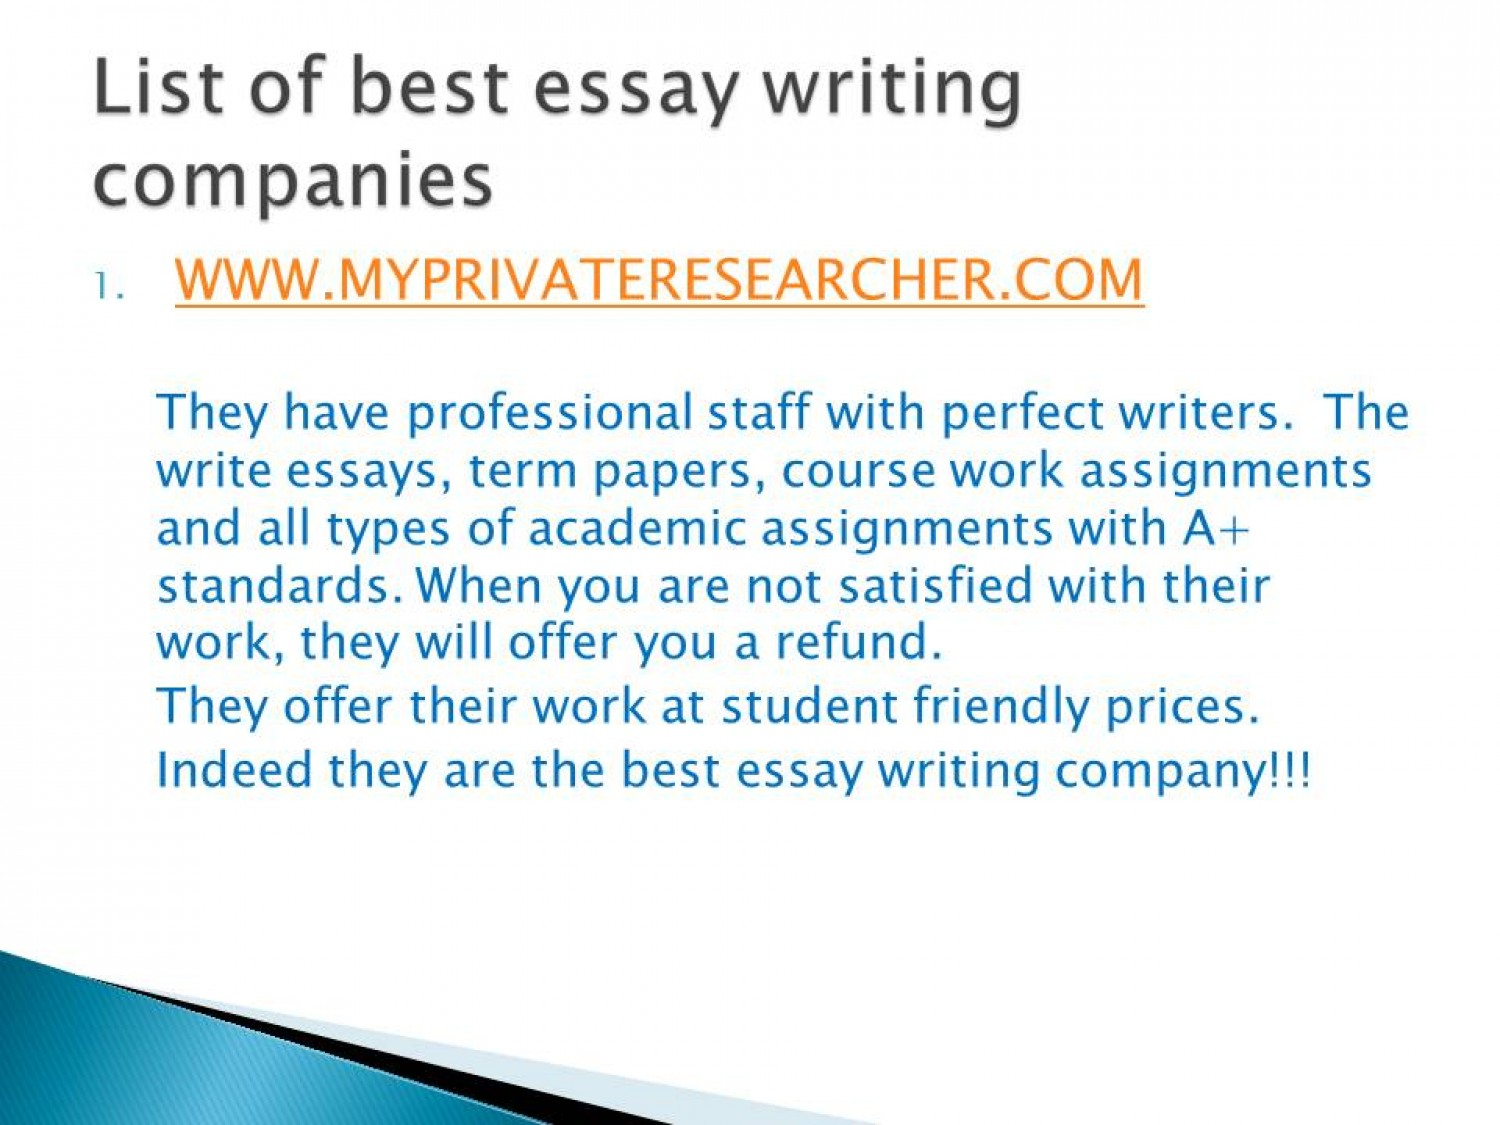 018 Essay Example Best Writing Companies 55eda1f2724ac W1500 Frightening Company In Interview To Work For Uk Full